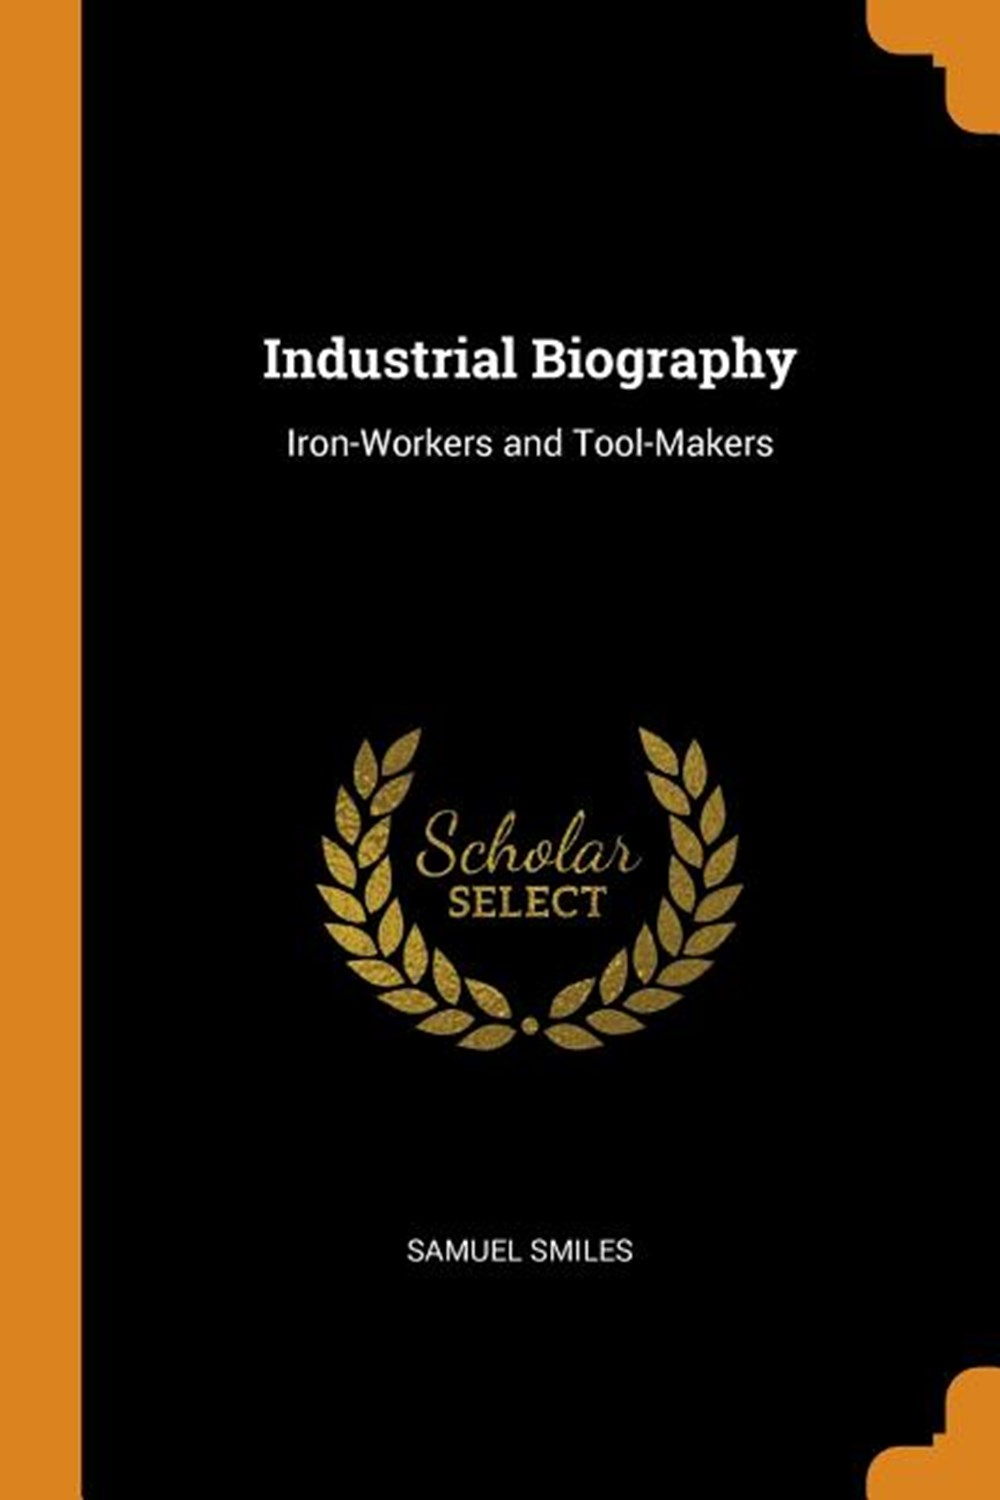 Industrial Biography Iron-Workers and Tool-Makers